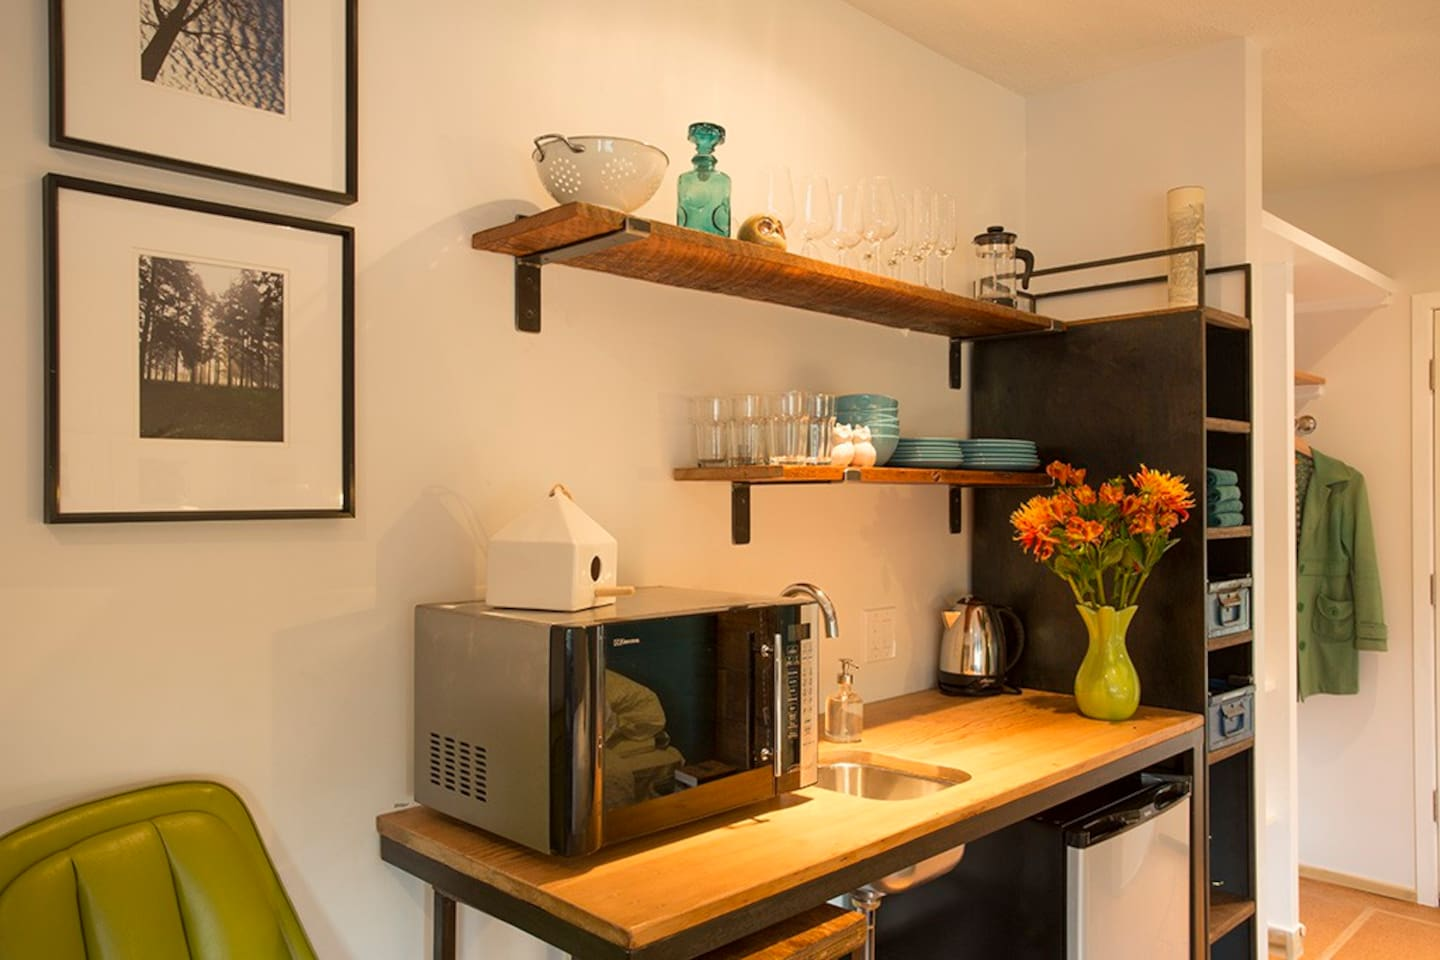 Beautiful custom steel kitchen, made by local artists. Reclaimed wood countertop & shelves.